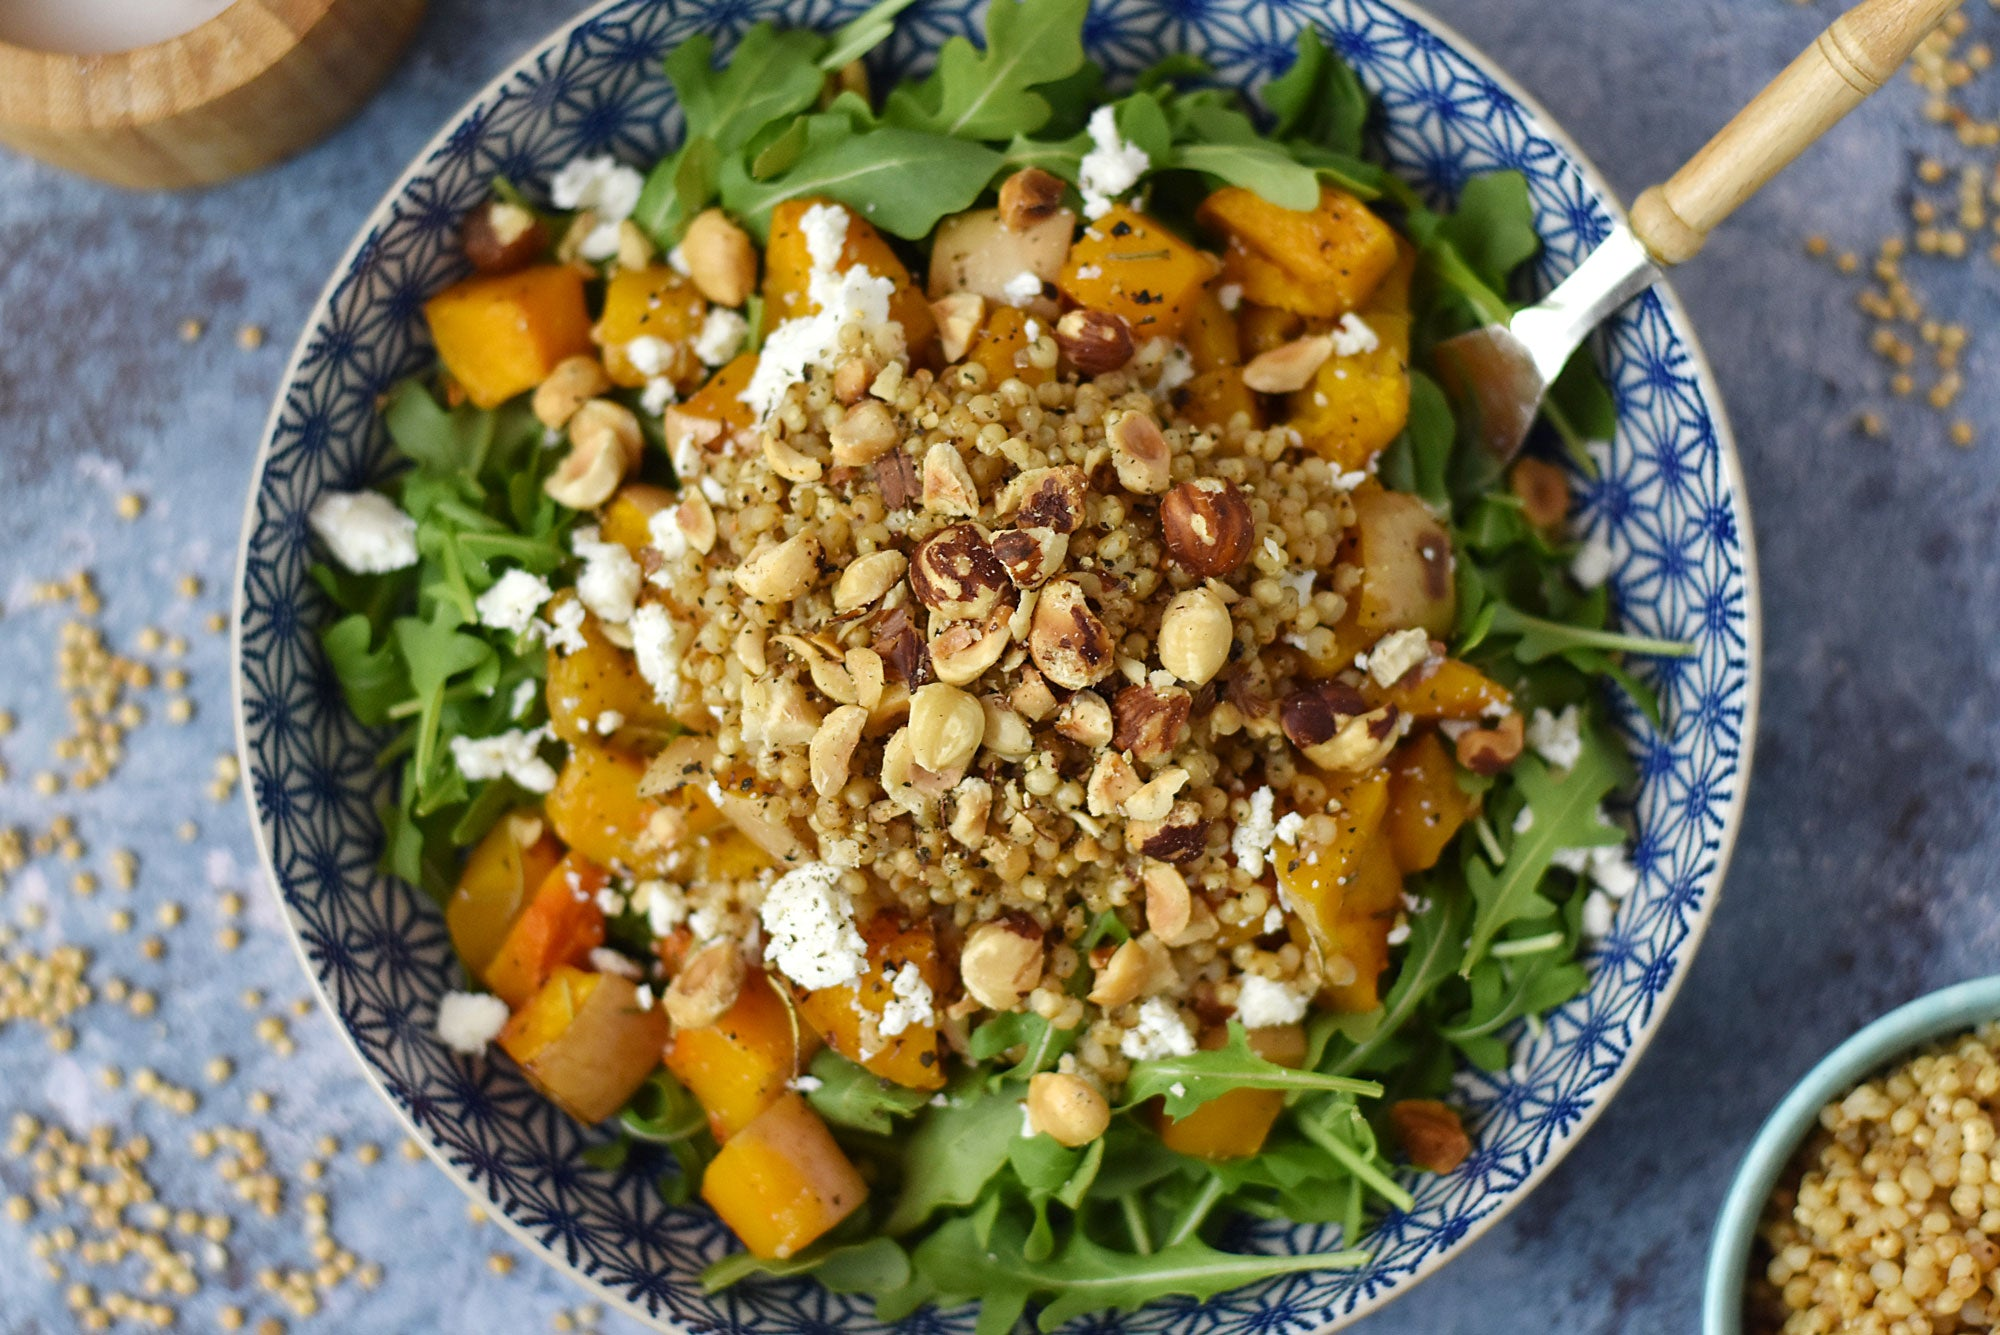 Butternut Squash and Sorghum Salad